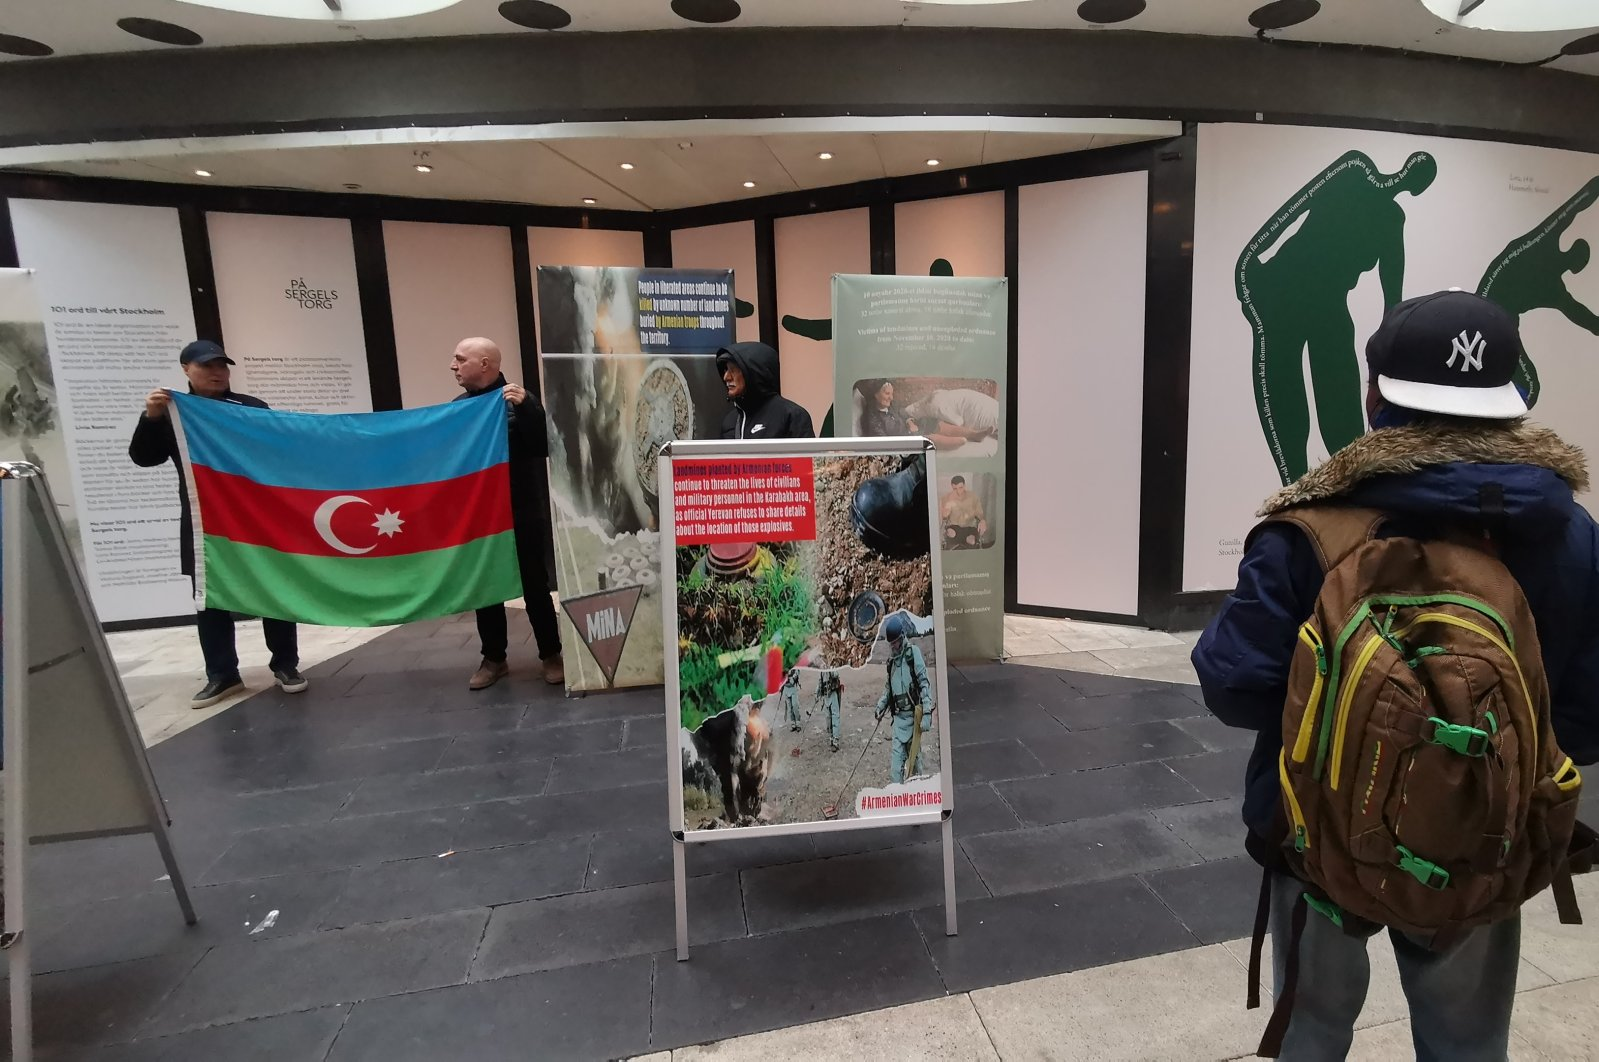 A photo exhibition on the atrocities committed by Armenia during its decadeslong occupation of Nagorno-Karabakh organized in Stockholm, Sweden on April 24, 2021. (AA)